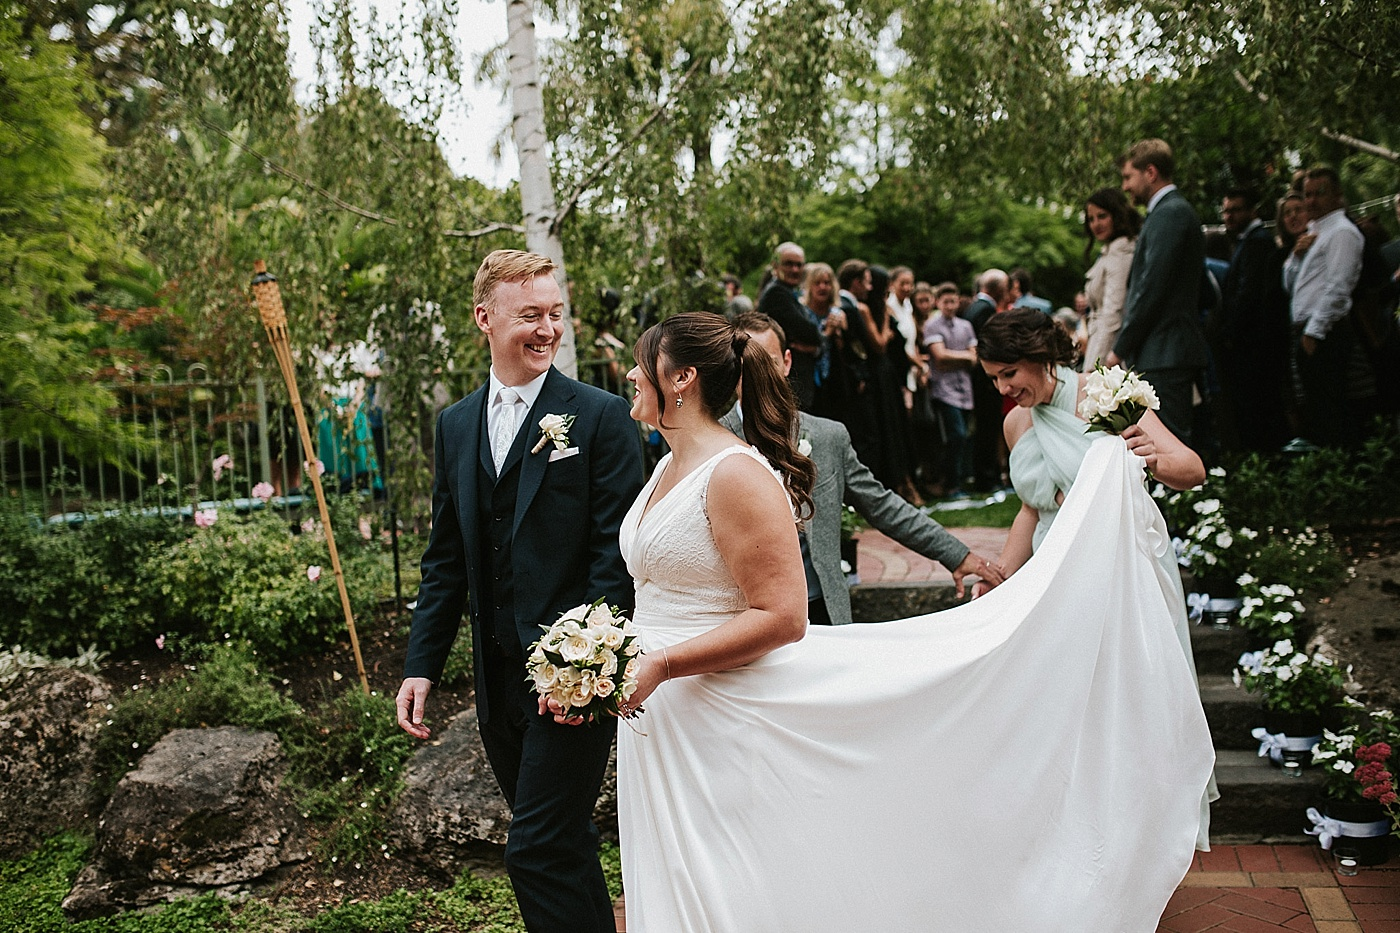 Brooke&David_Melbourne-Quirky-Relaxed-Fun-Casual-Backyard-Wedding_Melbourne-Wedding-Photography-55